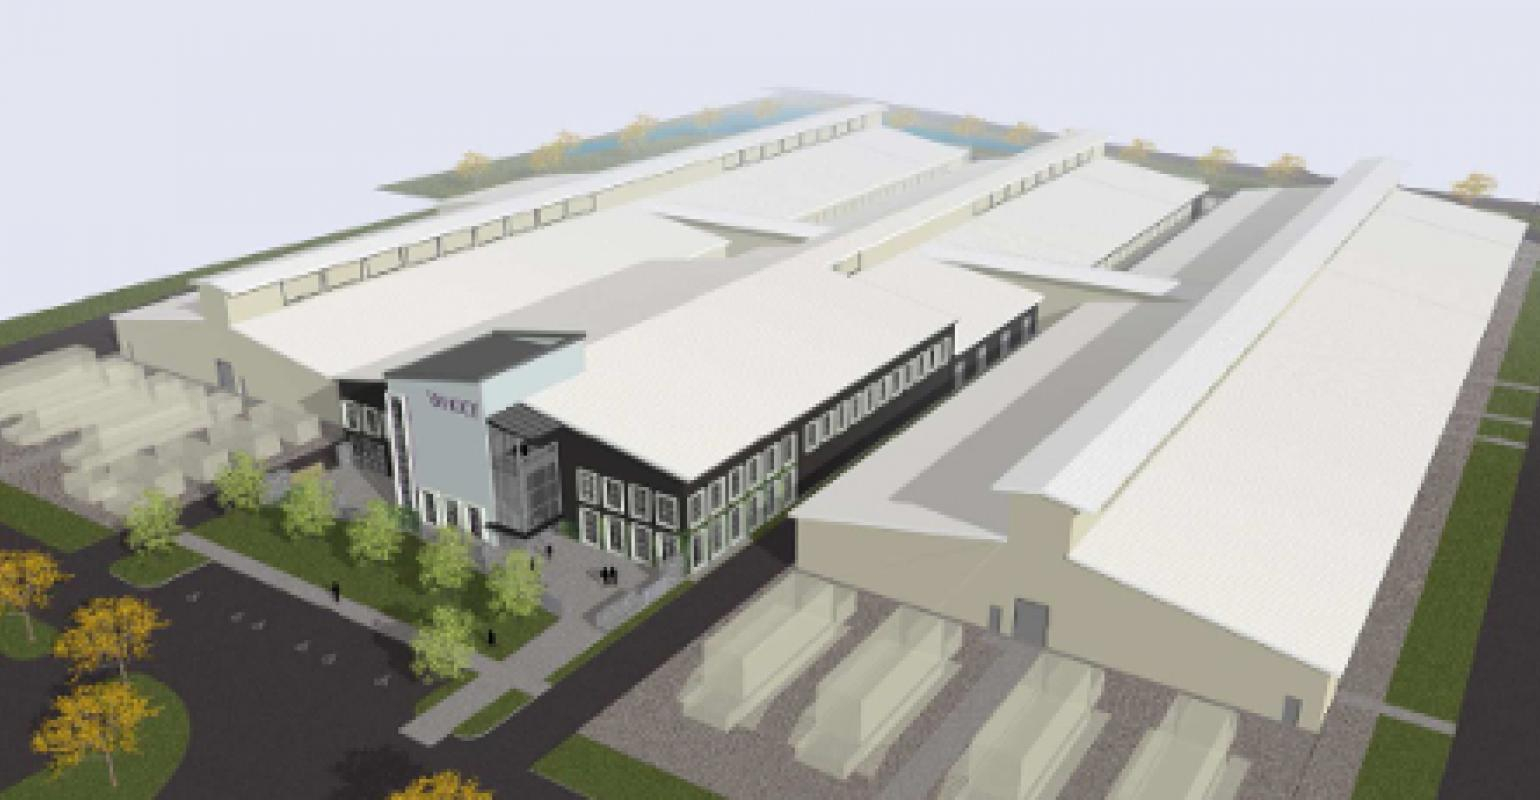 Yahoo Data Center Expansion in Quincy to Use Computing Coop Design